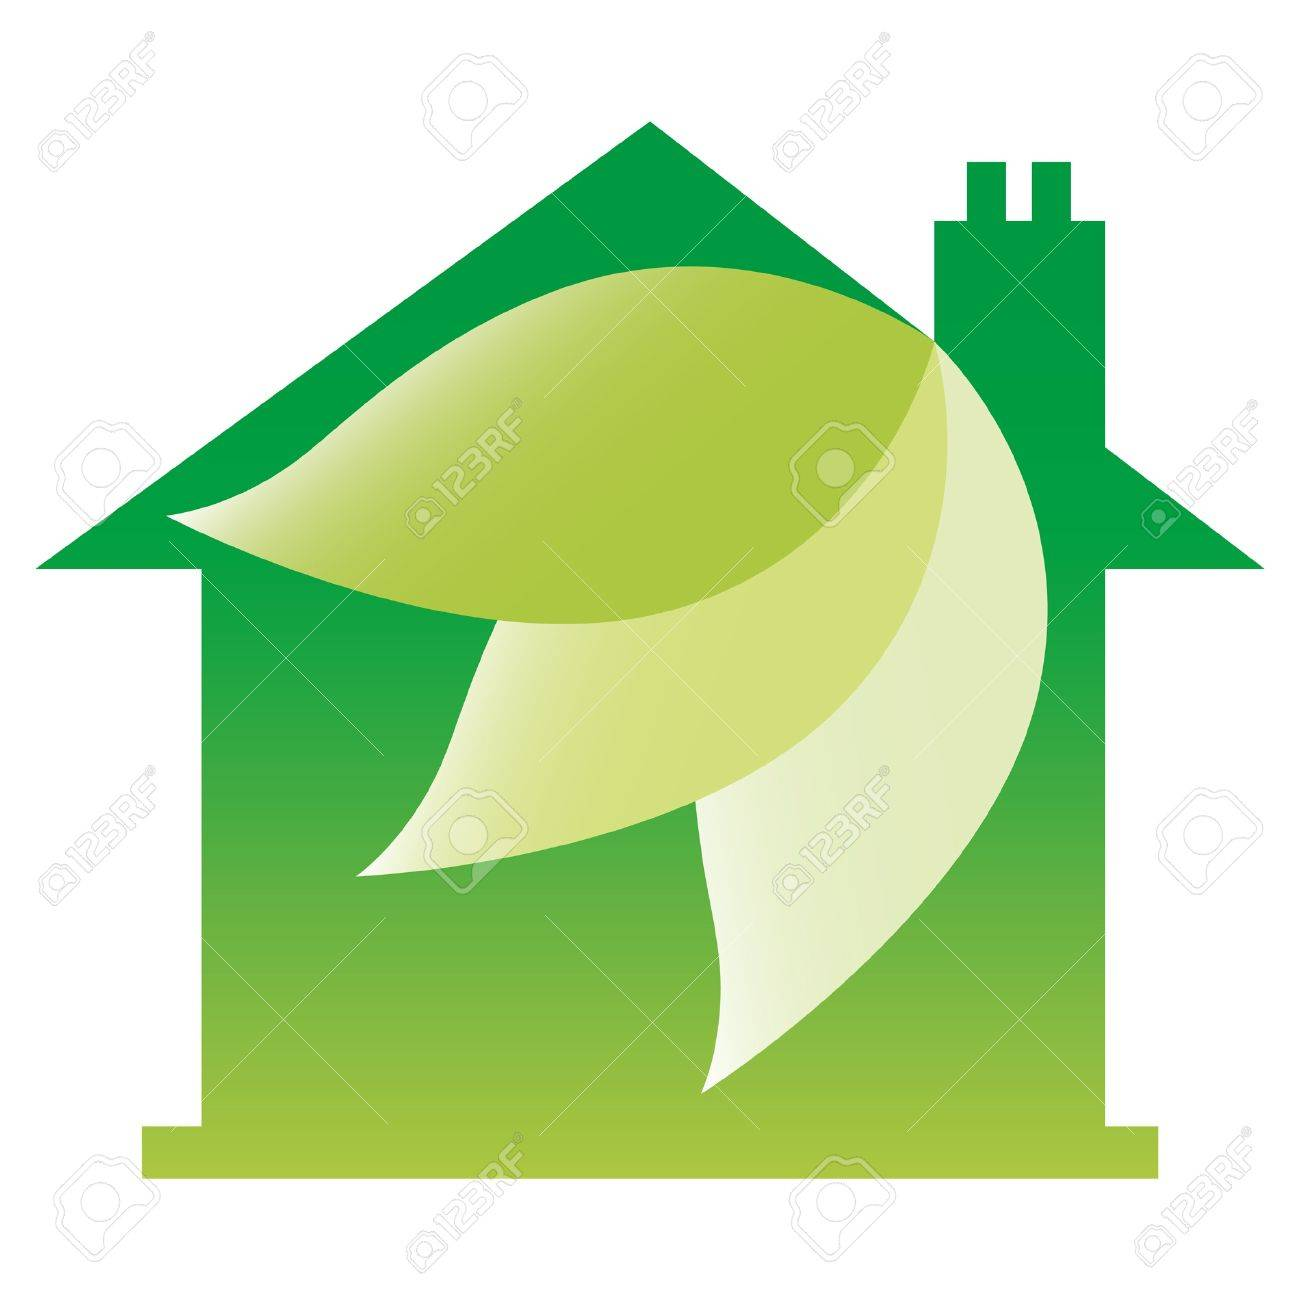 eco friendly house design royalty free cliparts vectors and eco friendly house design stock vector 9683479